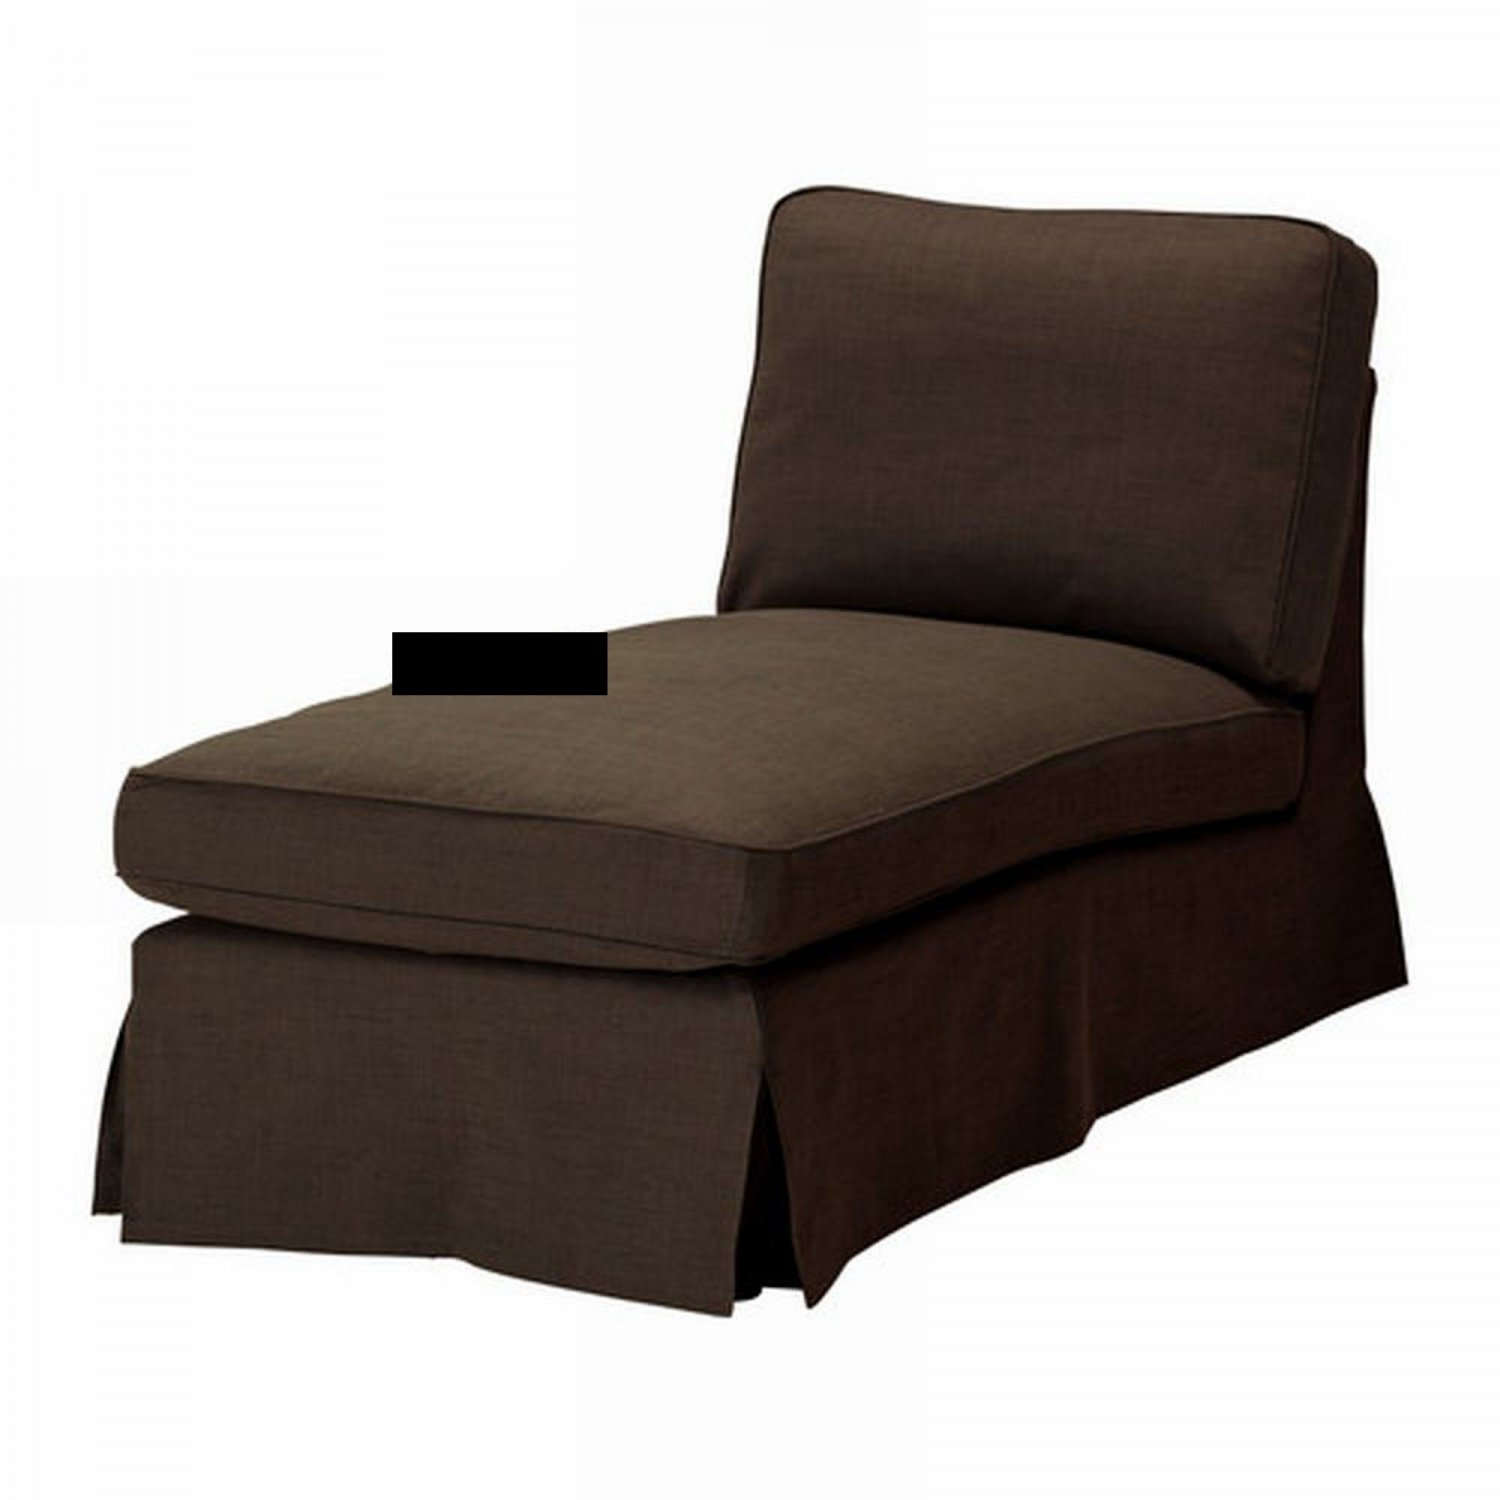 Ikea ektorp chaise longue cover slipcover svanby brown for Chaise longue ikea